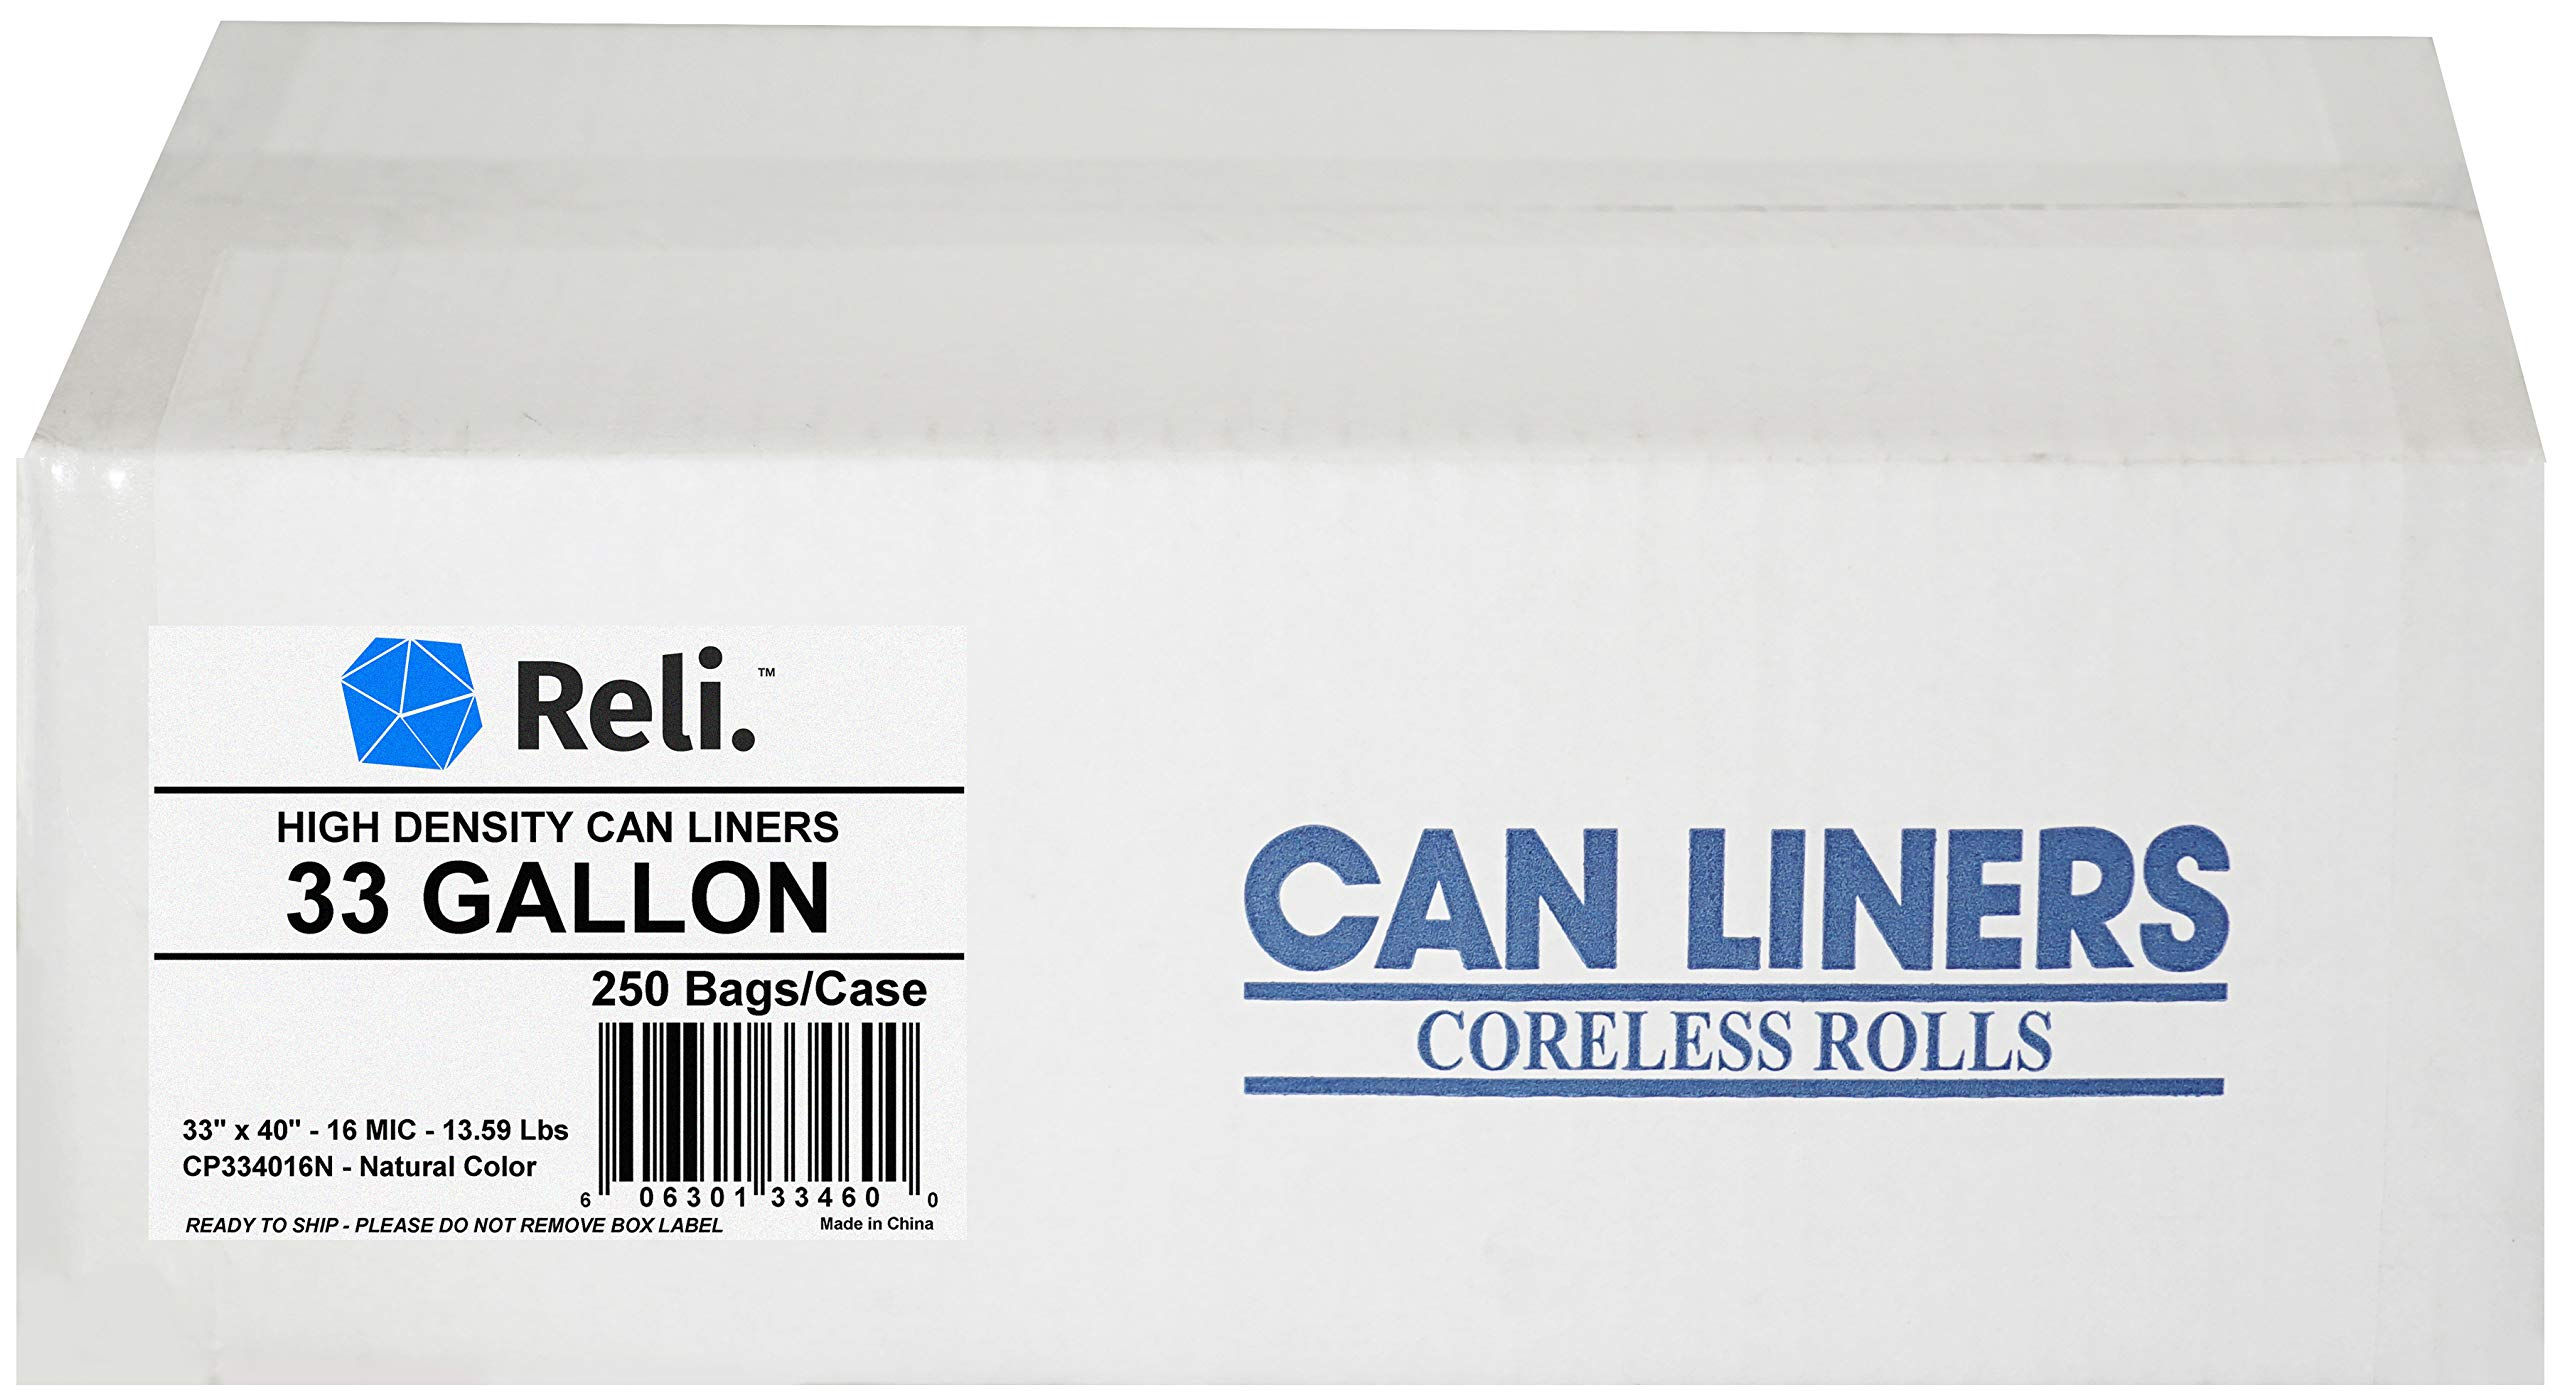 Reli. Wholesale 250 Count Trash Bags (33 Gallon) (Clear) - High Density Rolls (Can Liners, Garbage Bags with 30-35 Gallon Capacity) by Reli.